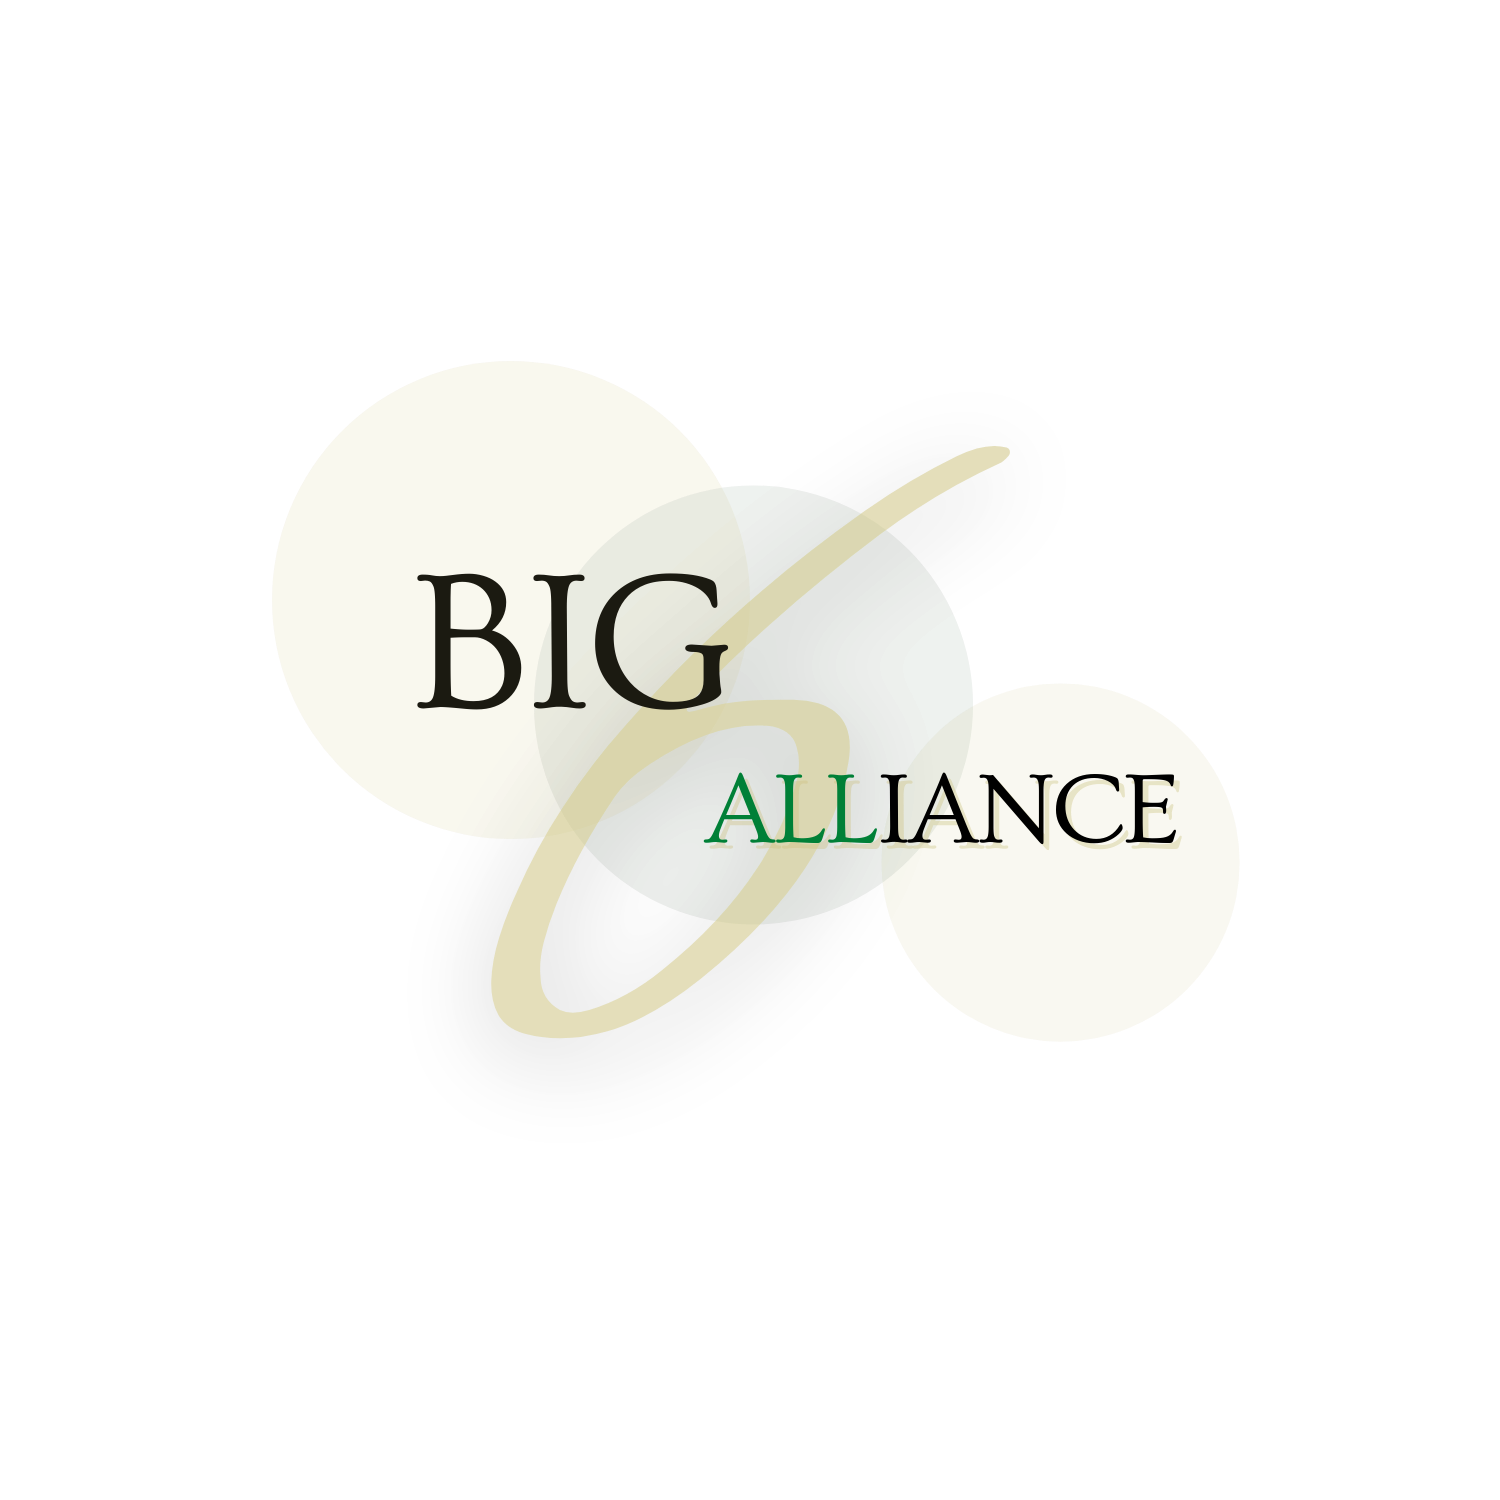 BIG 6 ALLIANCE